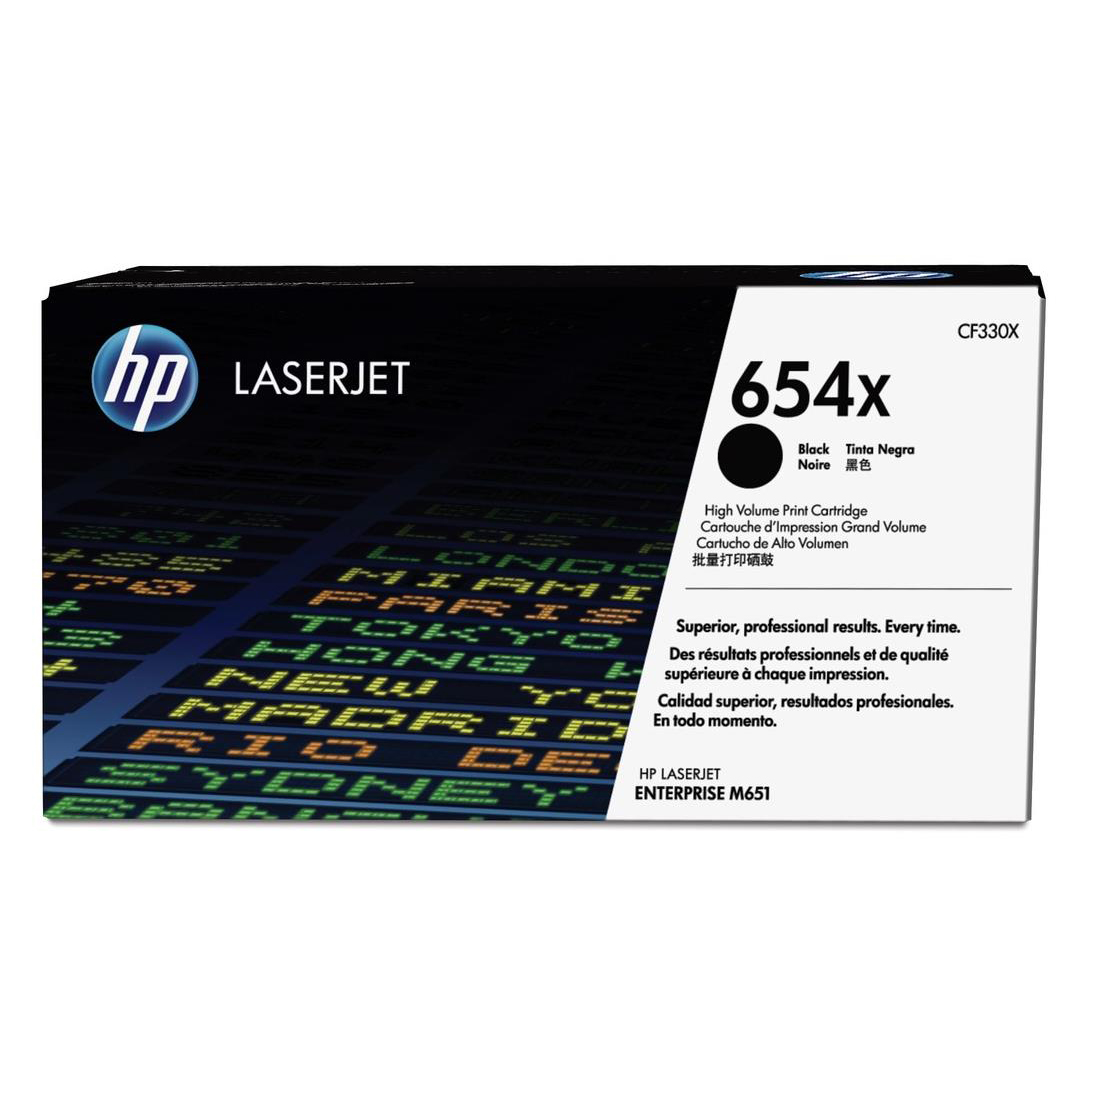 HP 654X Laser Toner Cartridge High Yield Page Life 20,500pp Black Ref CF330X 3to5 Day Leadtime